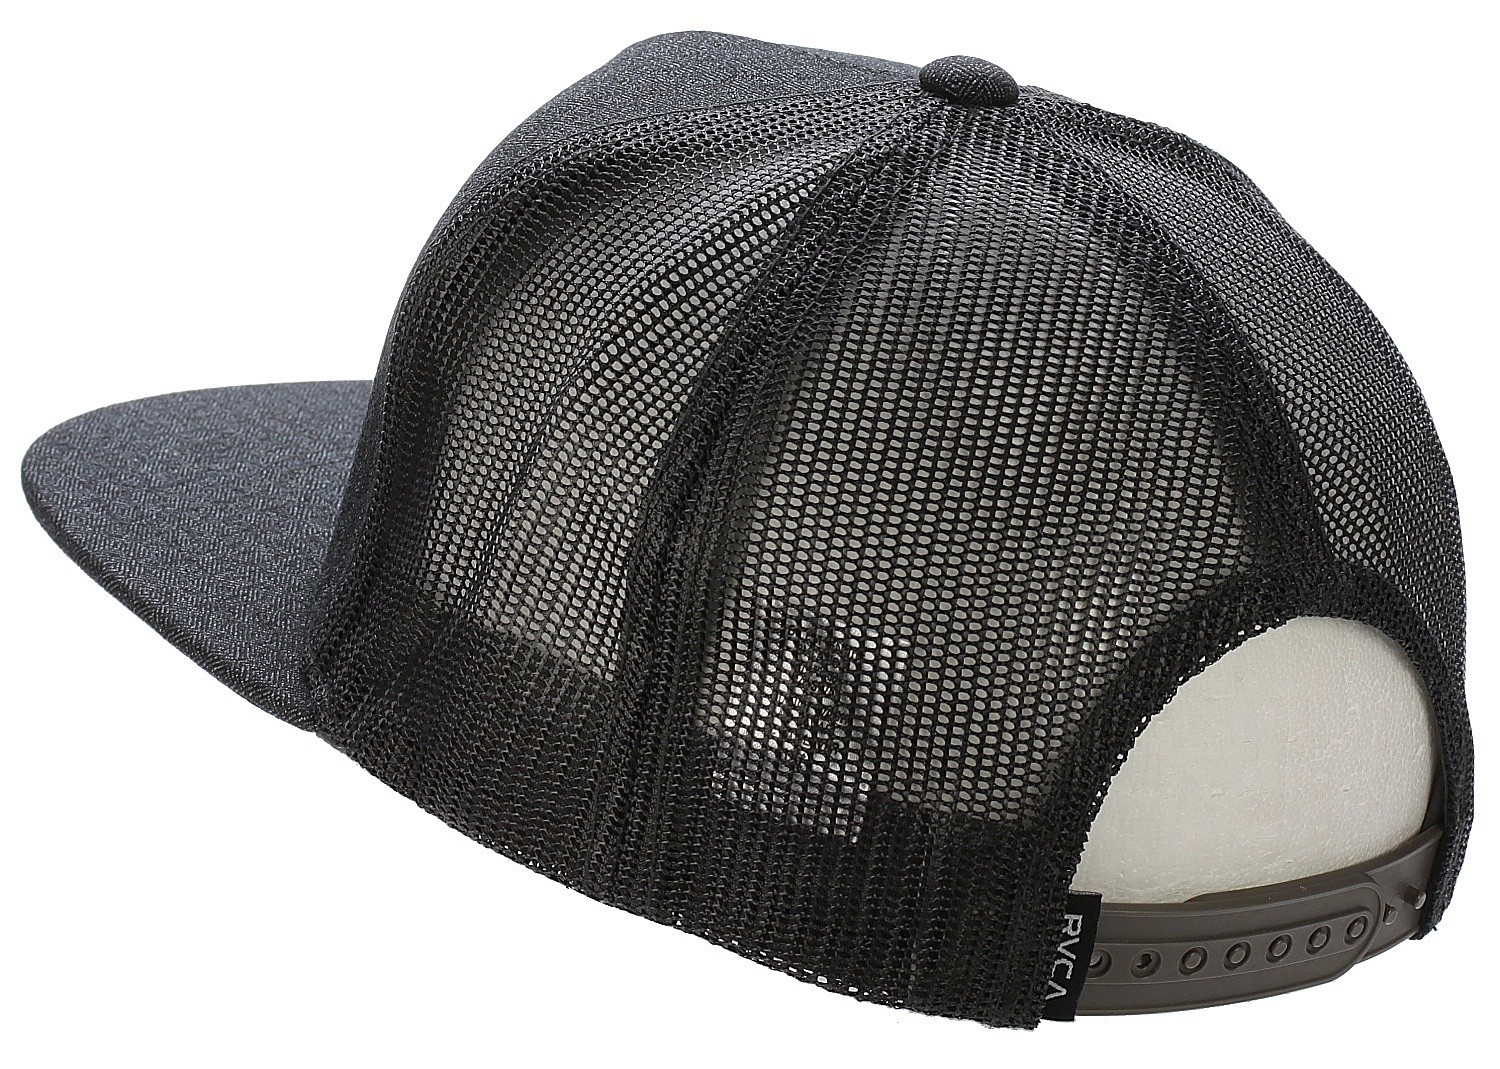 a7553ec05af ... spain cap rvca finley trucker charcoal. no longer available. 30d11 0c4b6